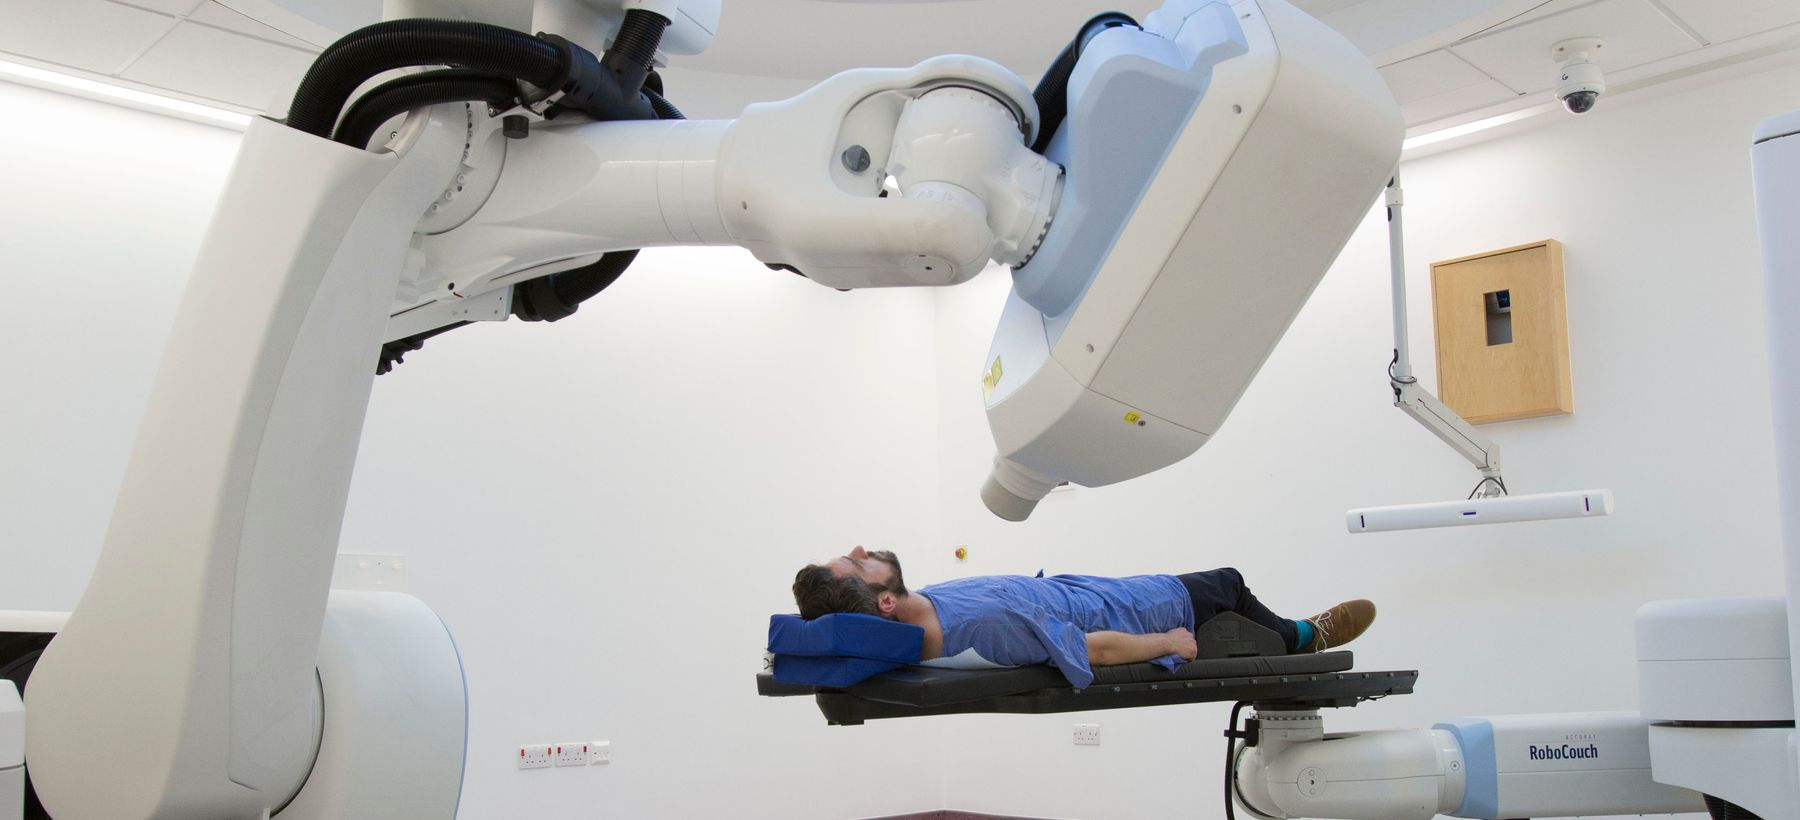 Patient being treated by CyberKnife